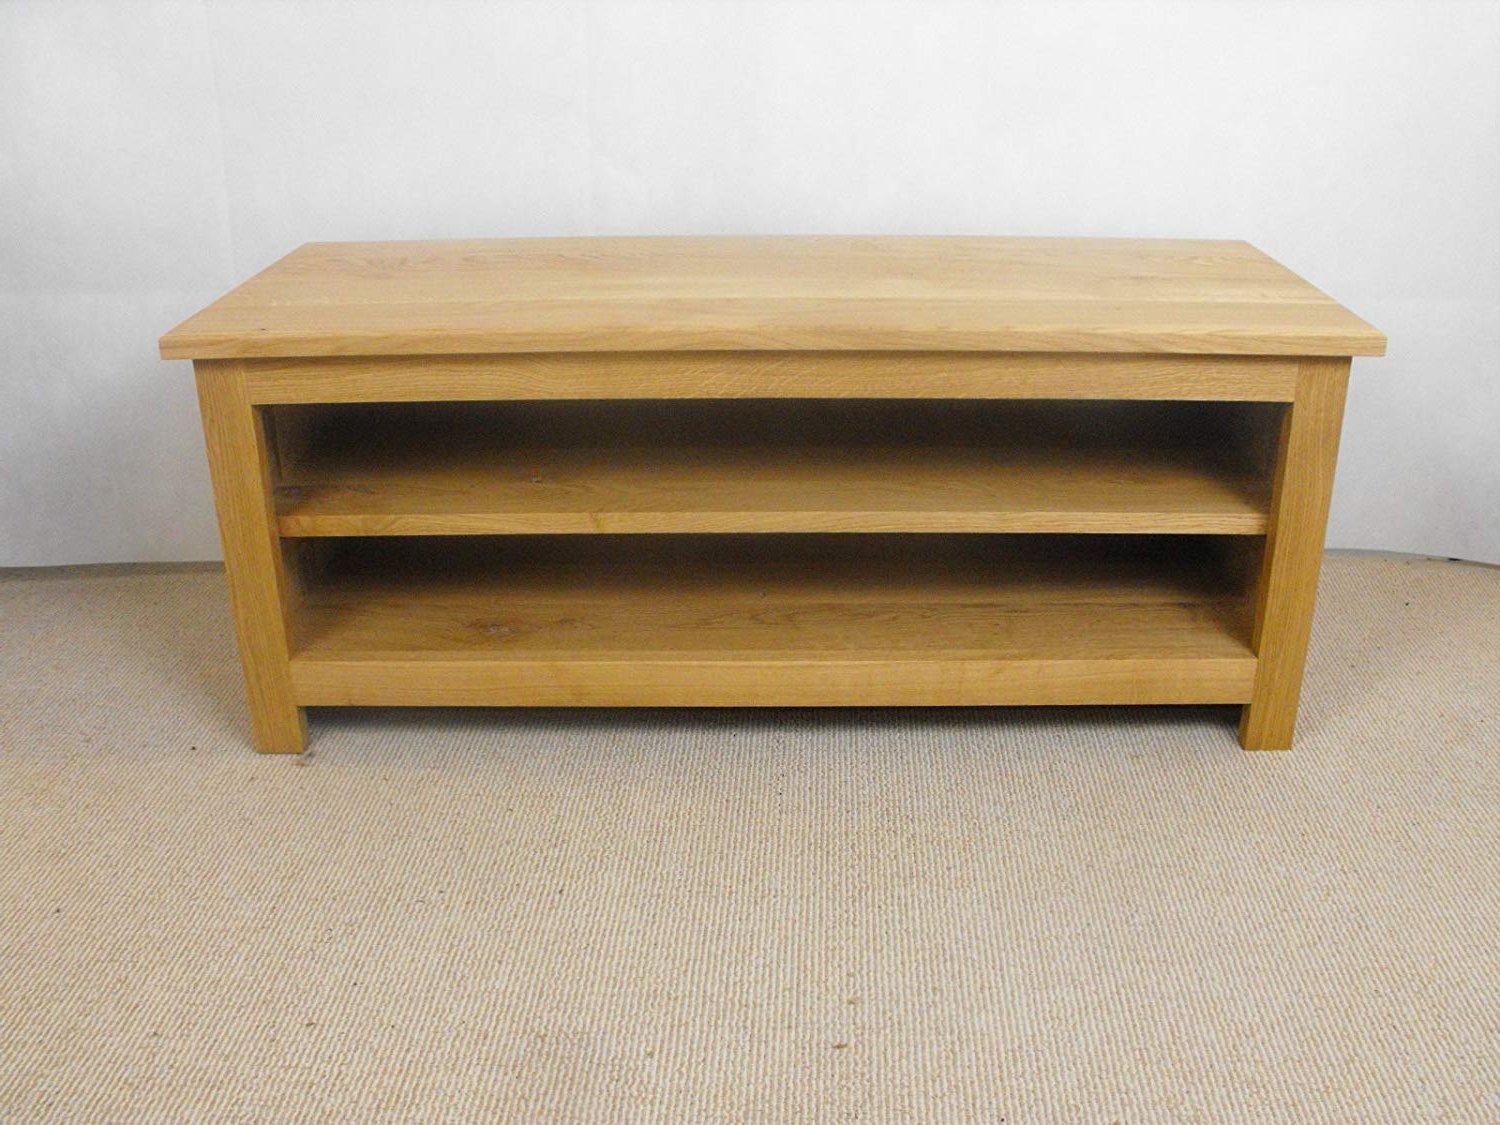 Popular Really Good Collection Range Low Oak Tv Unit, Stand Cabinet Pertaining To Low Oak Tv Stands (View 2 of 20)